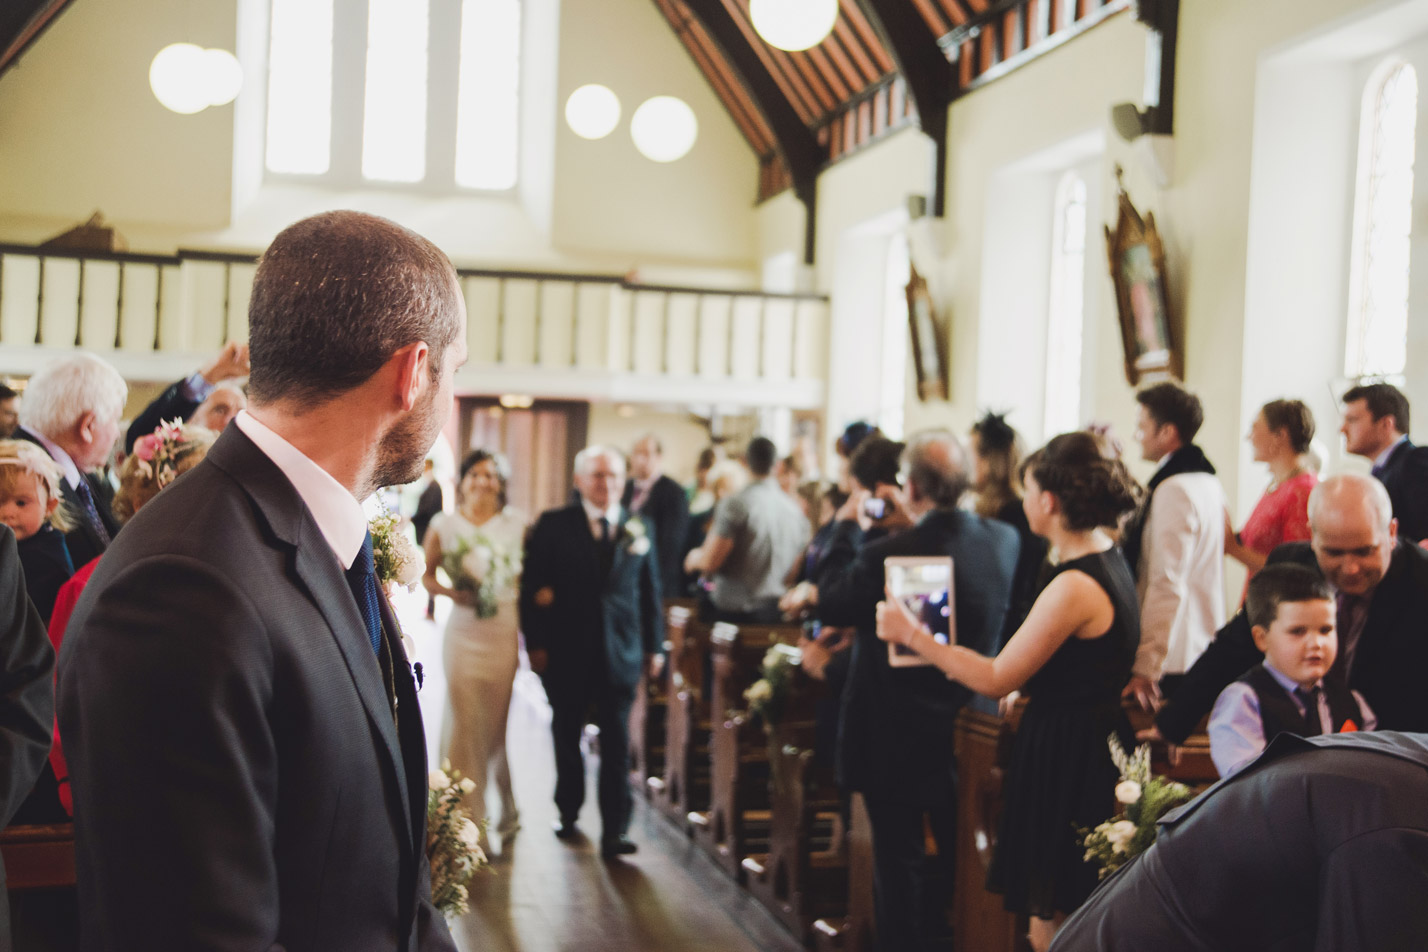 Groom looking at bride walking up the aisle in church. Wedding photography Meath.